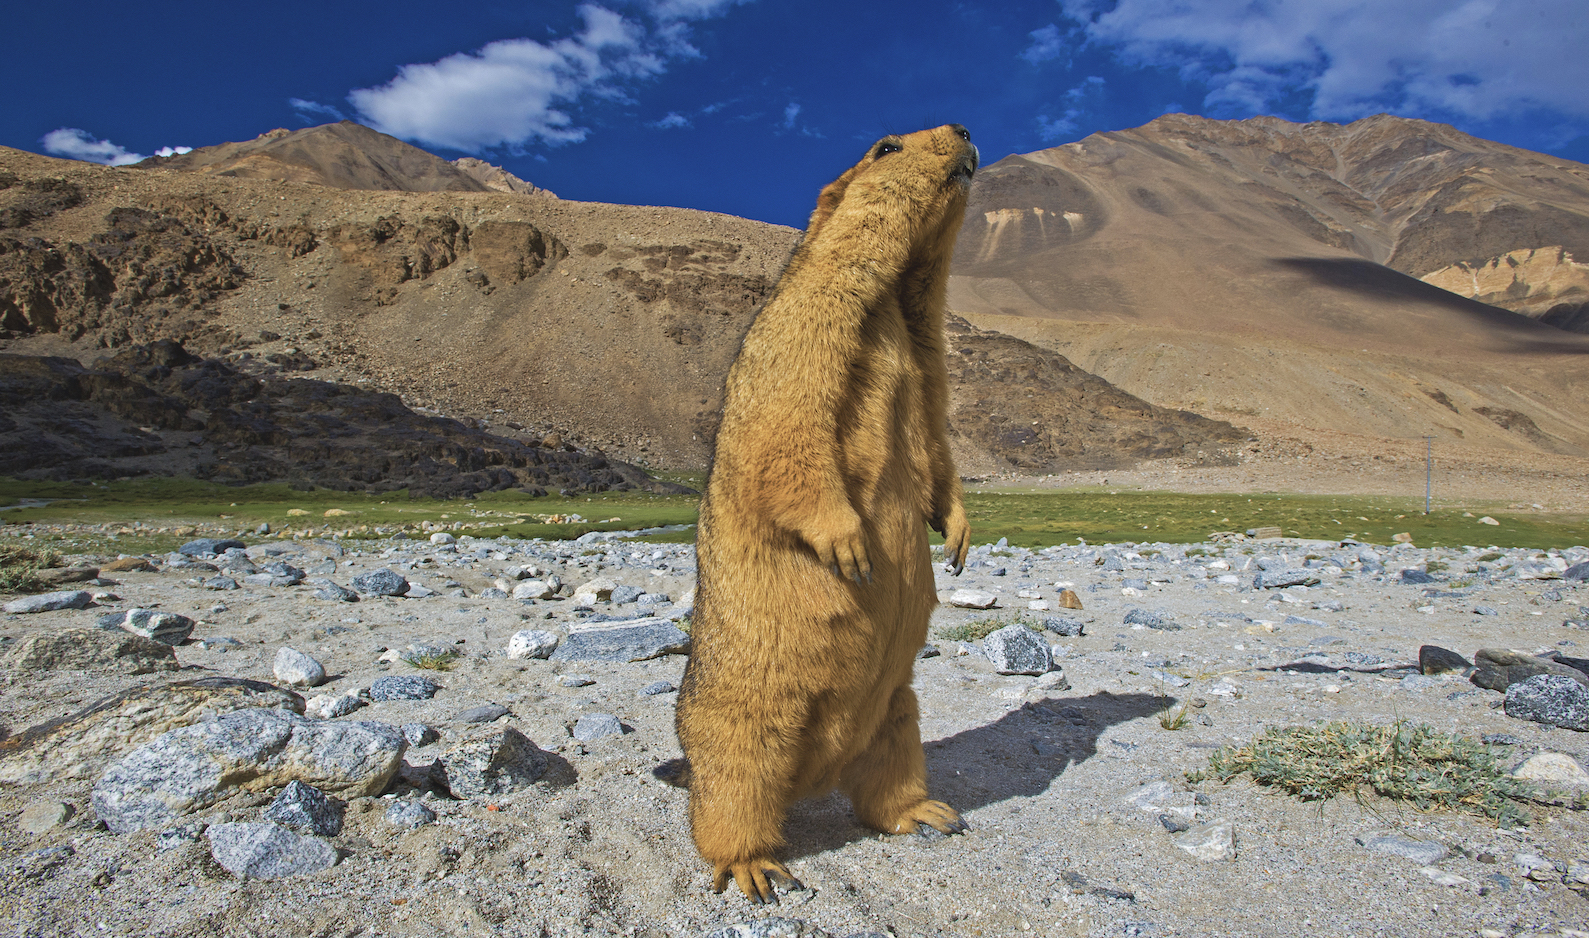 "When they aren't hibernating, marmots emerge from their burrows when the sun is out. ""The first thing they do is defecate,"" says Rajamani, ""then eat, and socialise, though the order is flexible."" When the intensity of the sun increases, marmots return to their burrows, surfacing once more in the evening hours. They spend much of their time play-wrestling. Photo: Dhritiman Mukherjee  Two species of marmot are found in India: the long-tailed marmot (Marmota caudata) and the Himalayan marmot (Marmota himalayana), pictured here. In India, Himalayan marmots are found in Ladakh, Himachal Pradesh, Uttarakhand, Arunachal Pradesh, and Sikkim. Cover photo: Dhritiman Mukherjee"